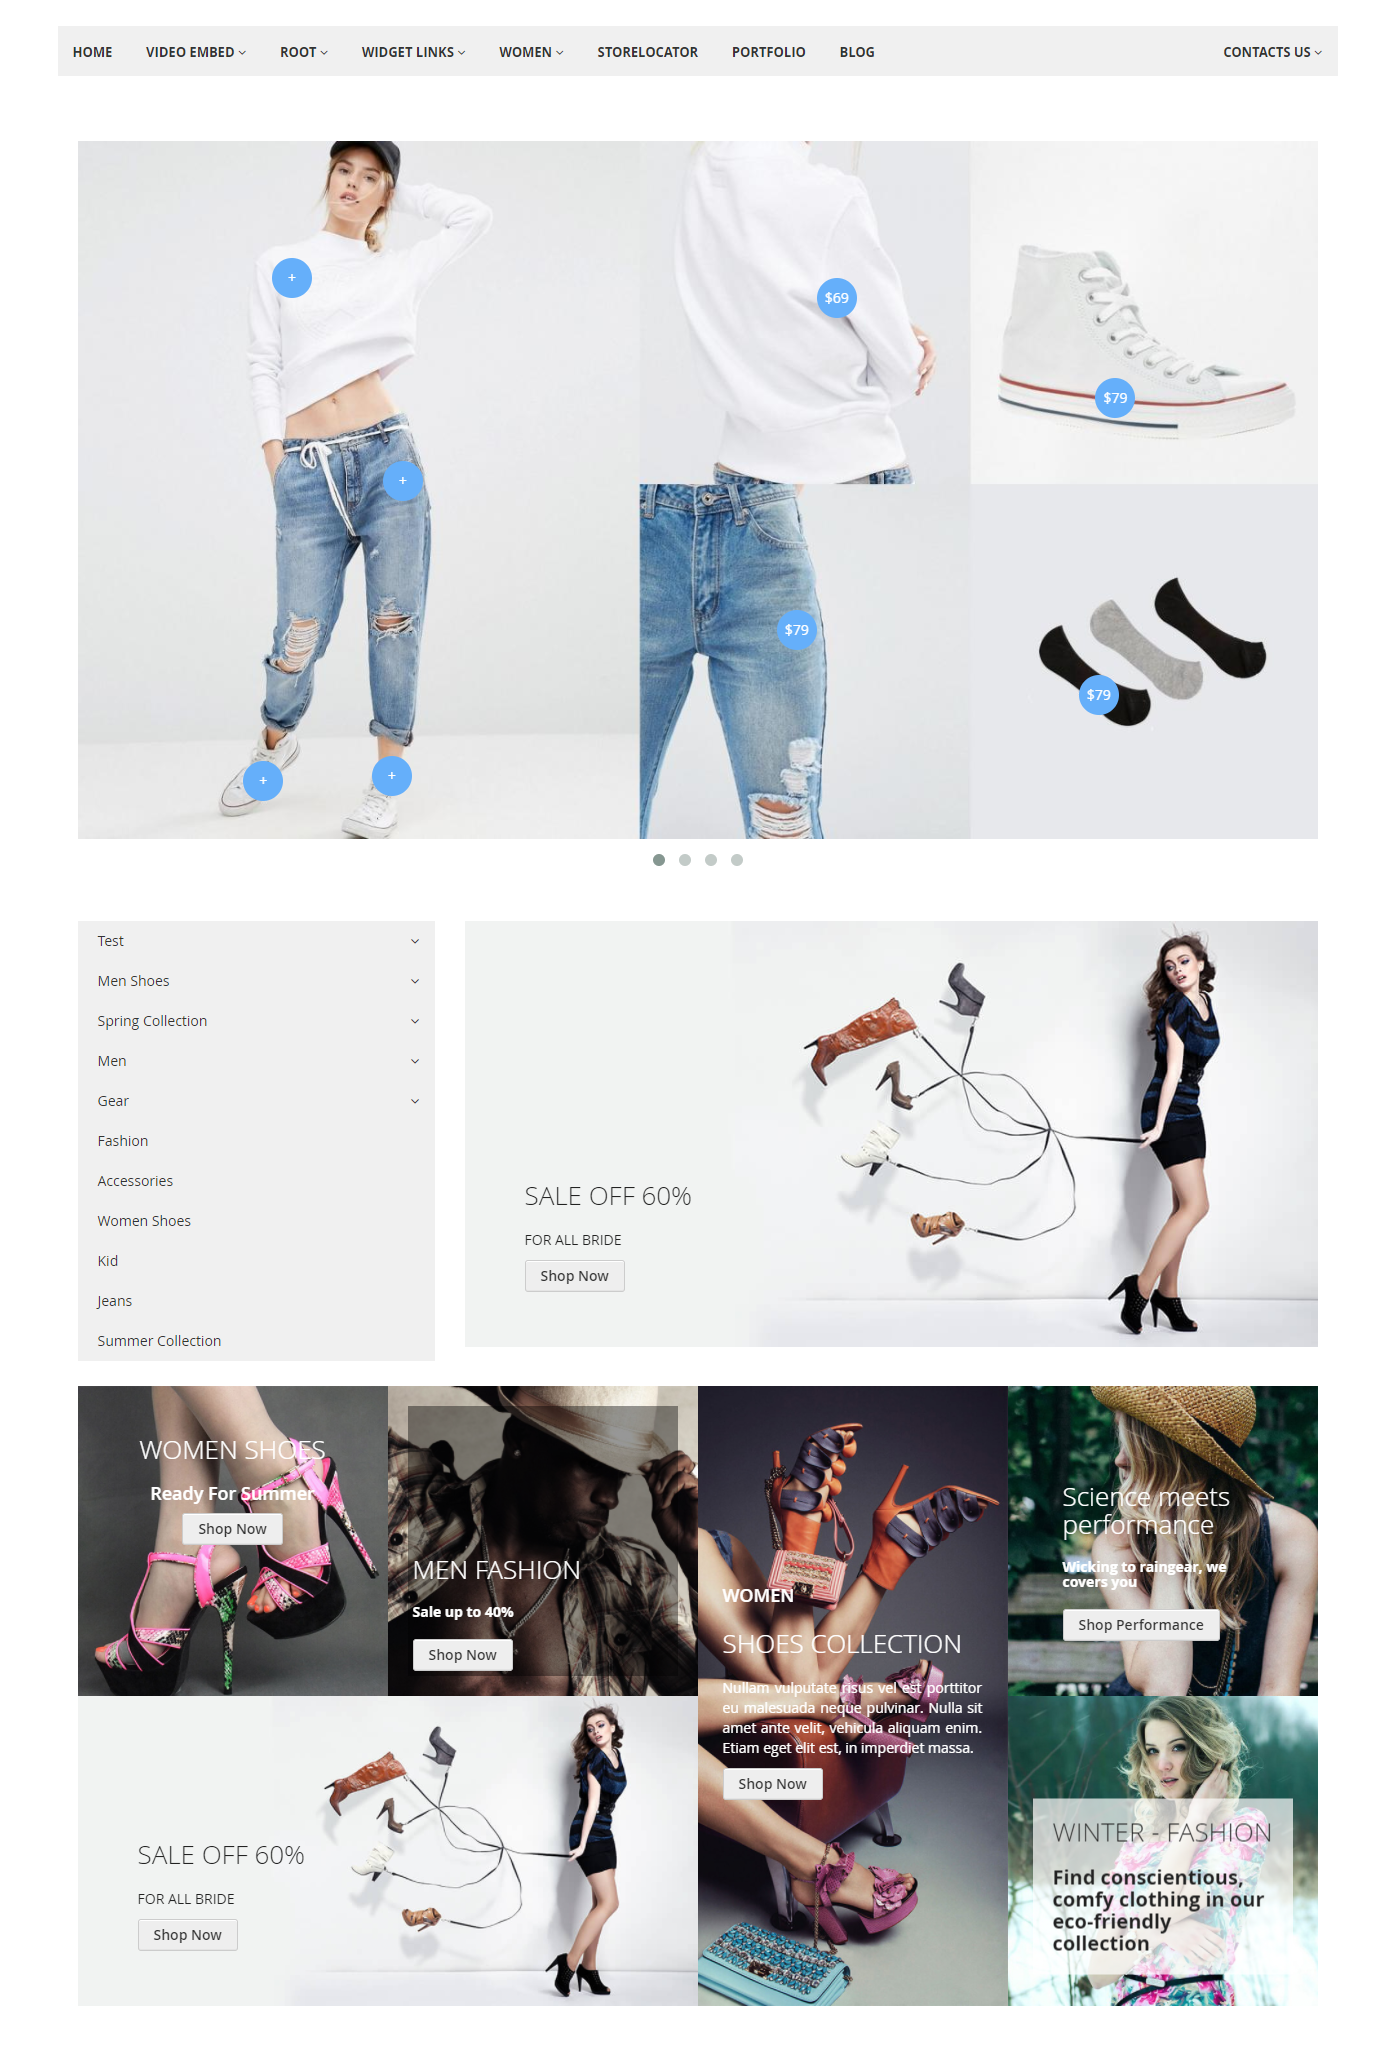 Free banner extension in magento - Promotion Banners Extension For Magento 2